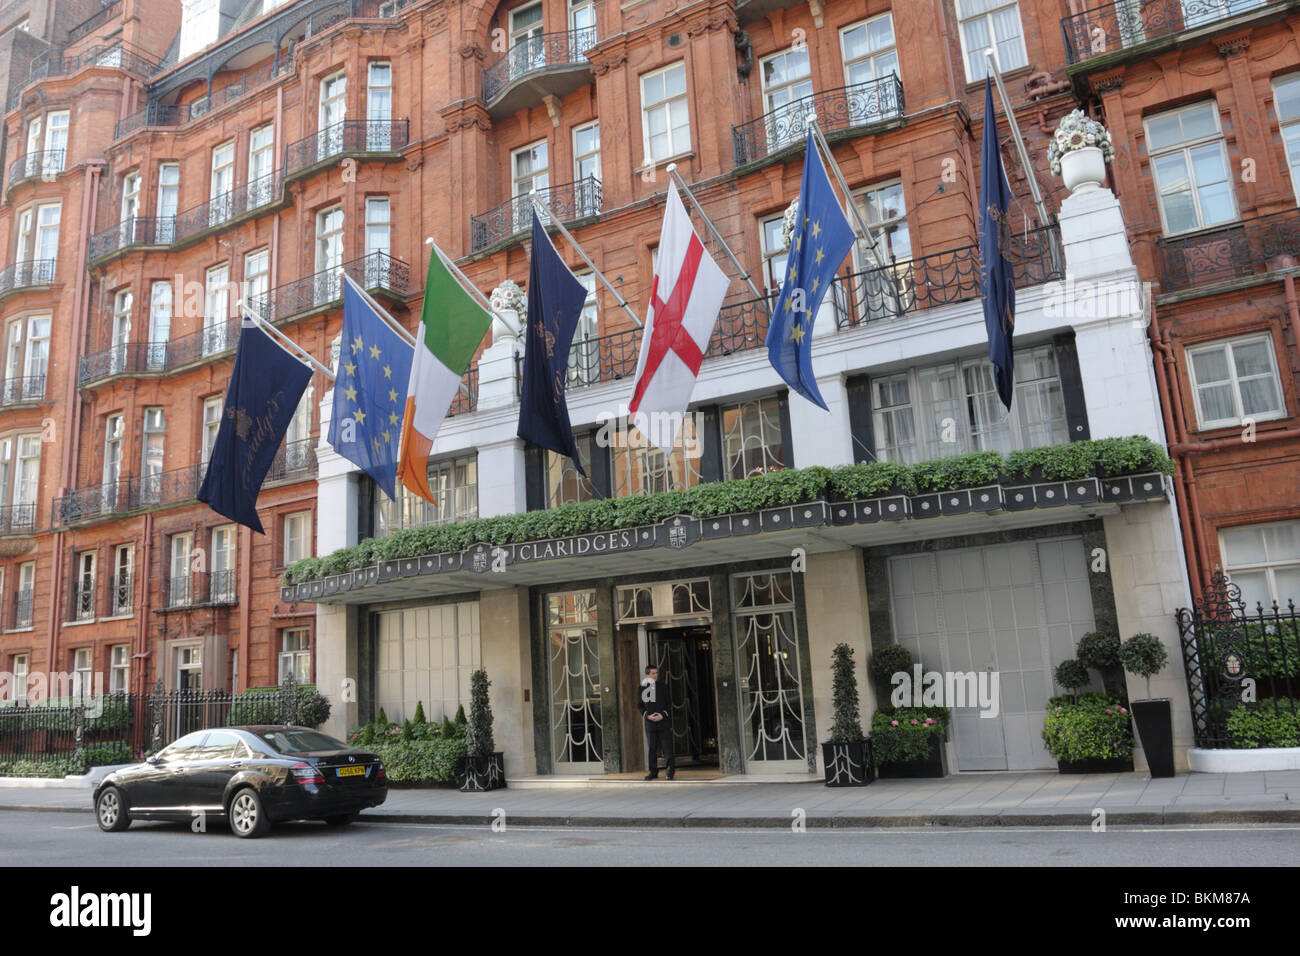 The canopied main entrance and lone doorman at the terracotta colored facade of Claridges Hotel in Brook St Mayfair. - Stock Image